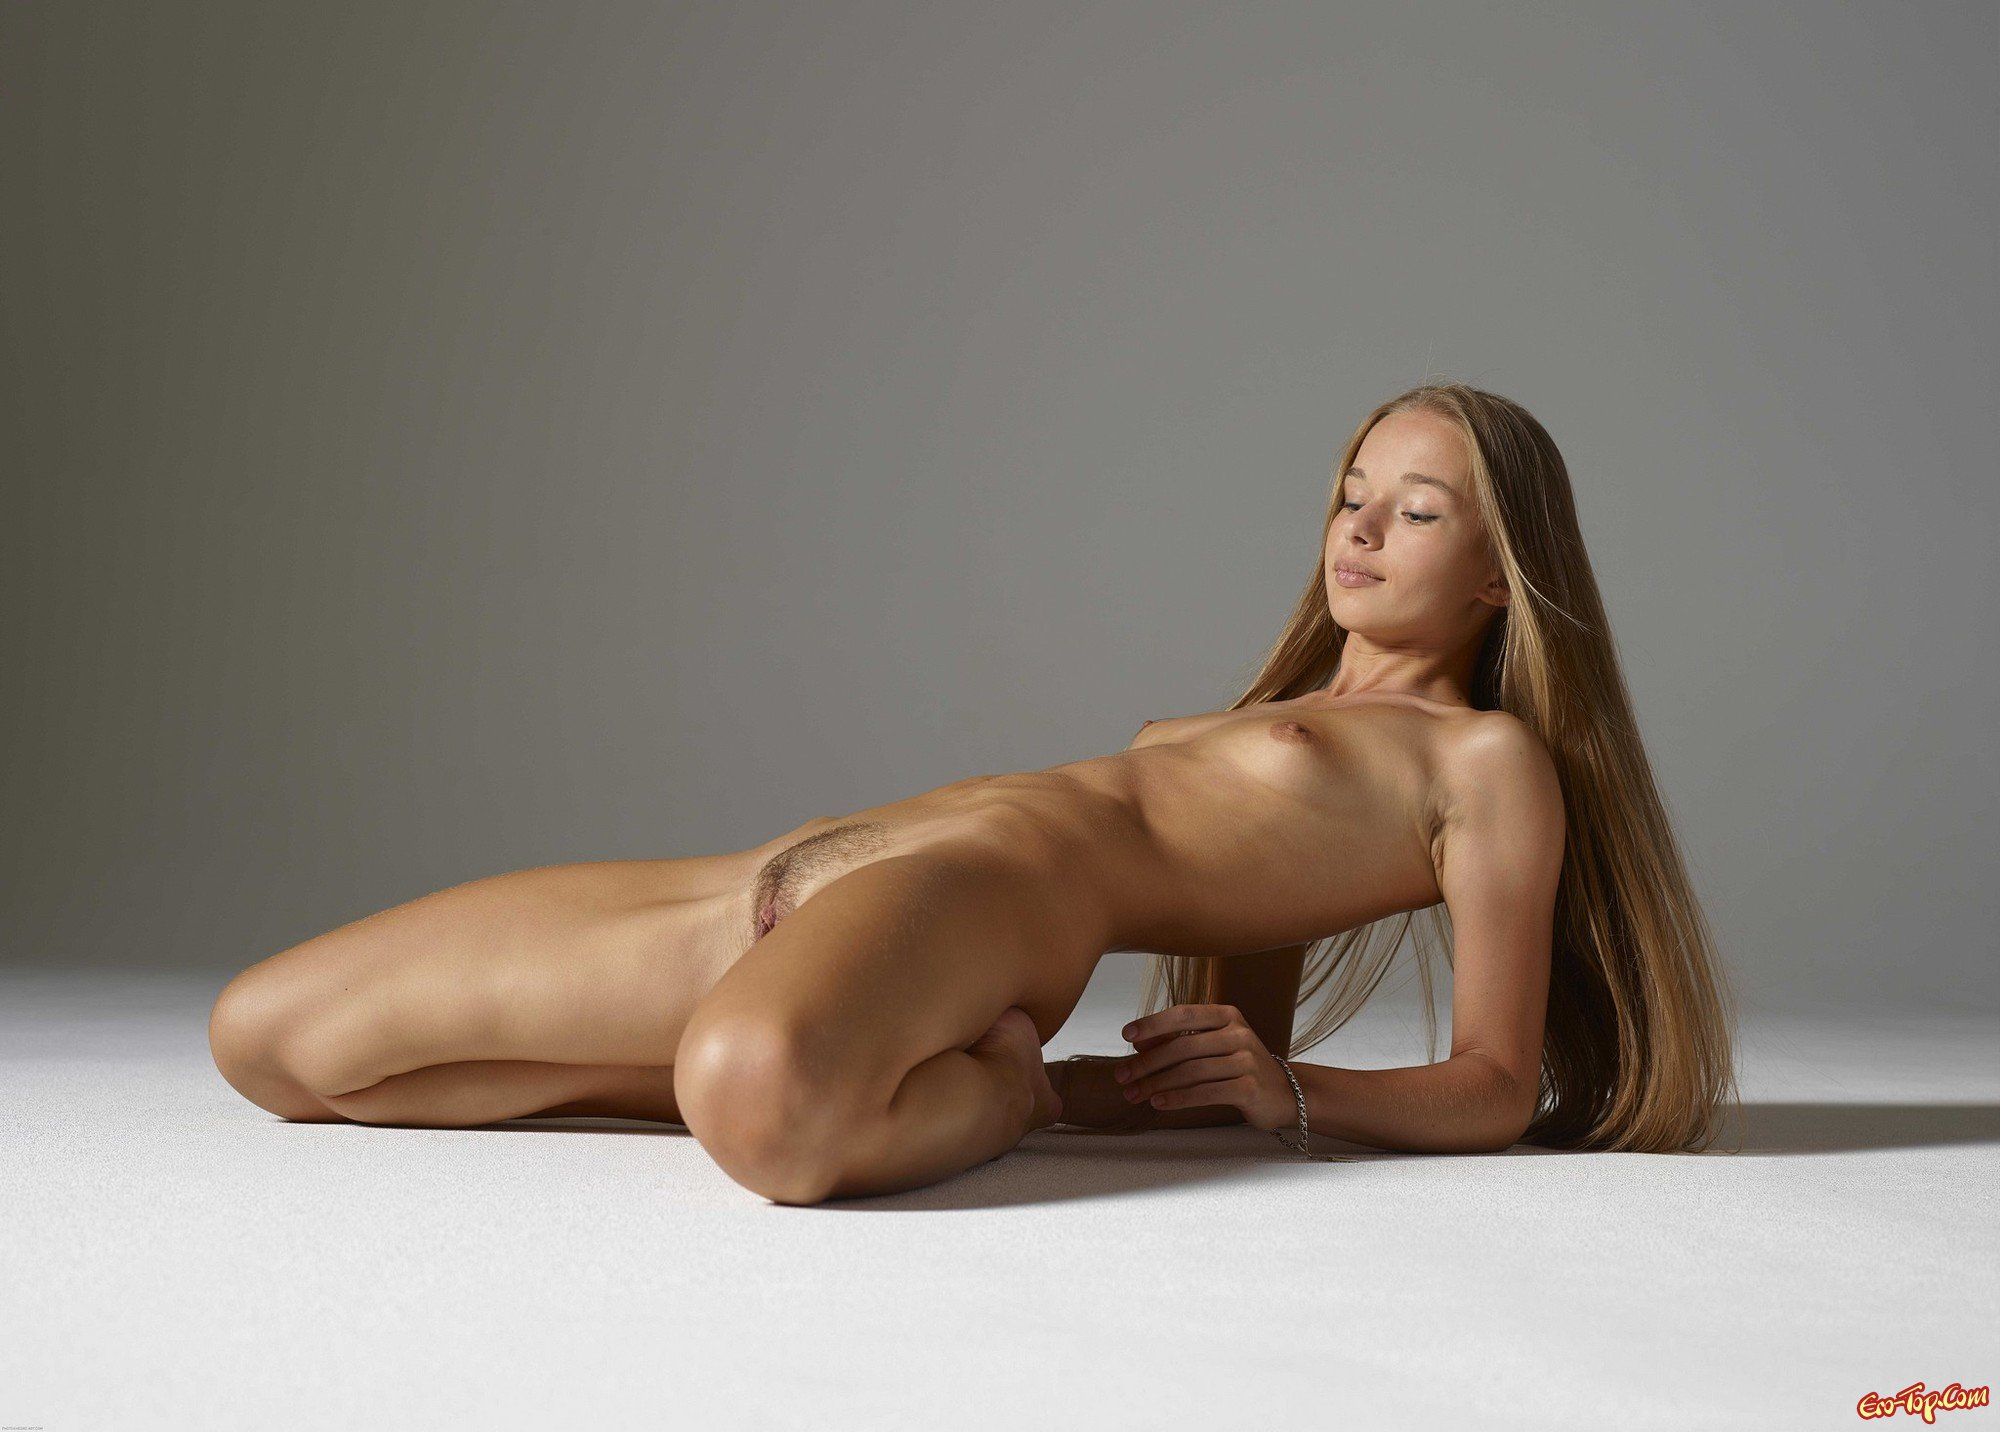 young-artistic-nude